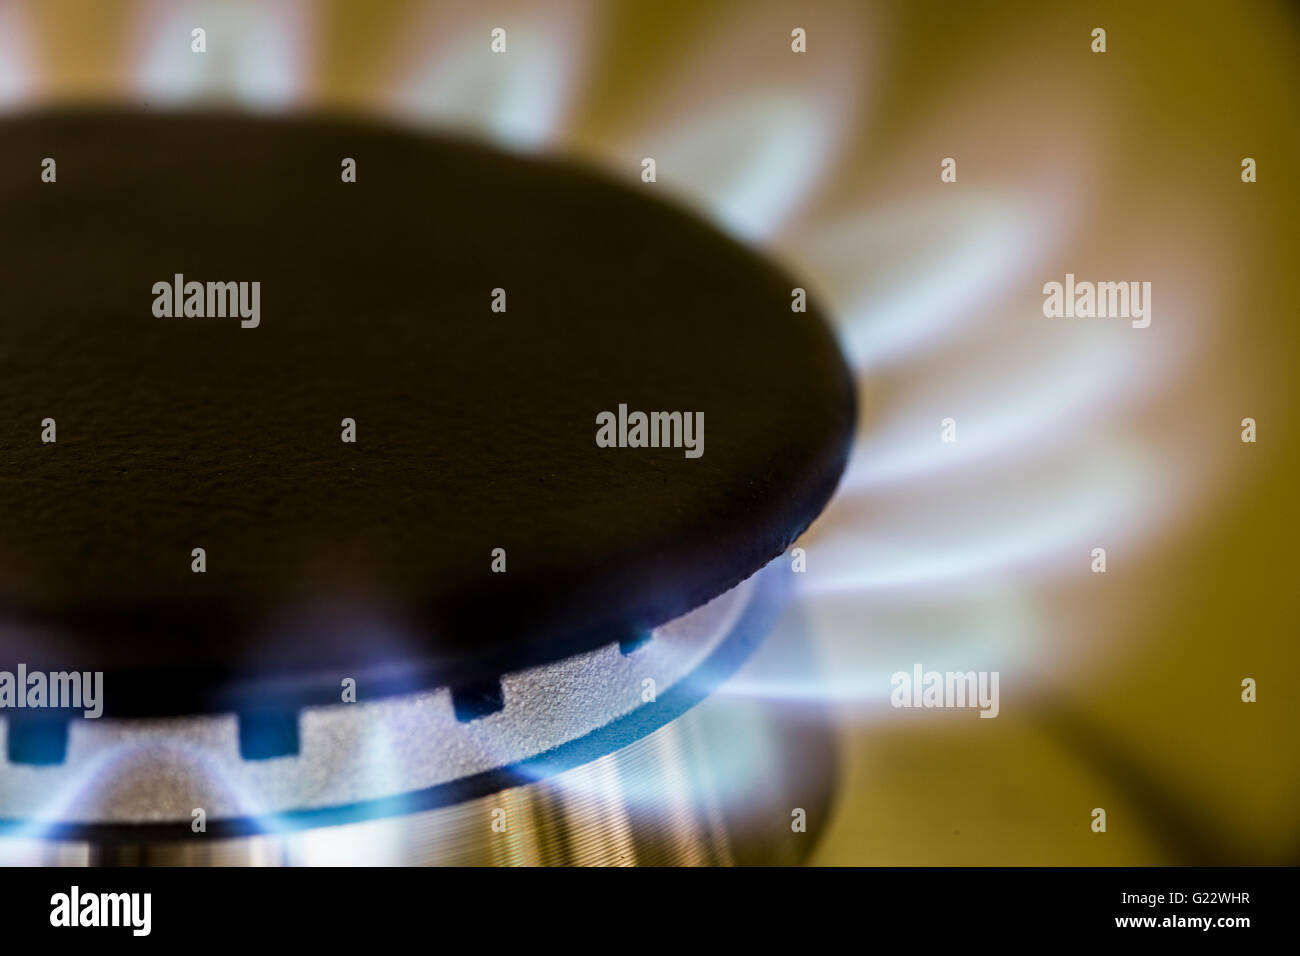 Fossil fuel close up of blue gas flame in home kitchen cooker - Stock Image